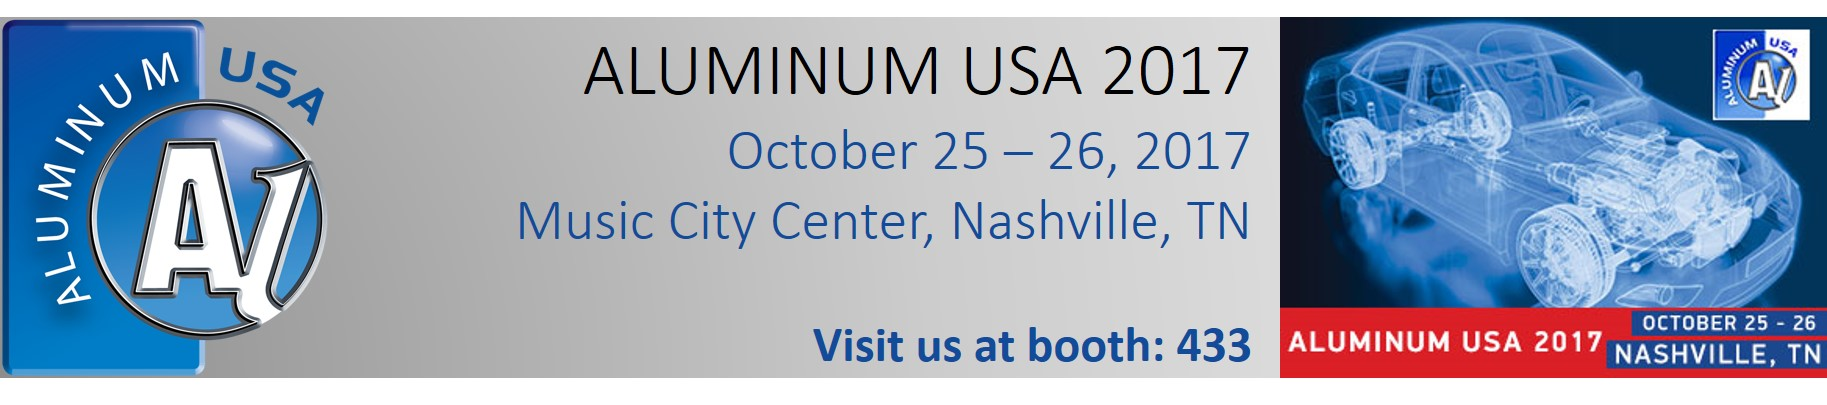 Aluminum USA 2017, October 25 – 26, Nashville TN